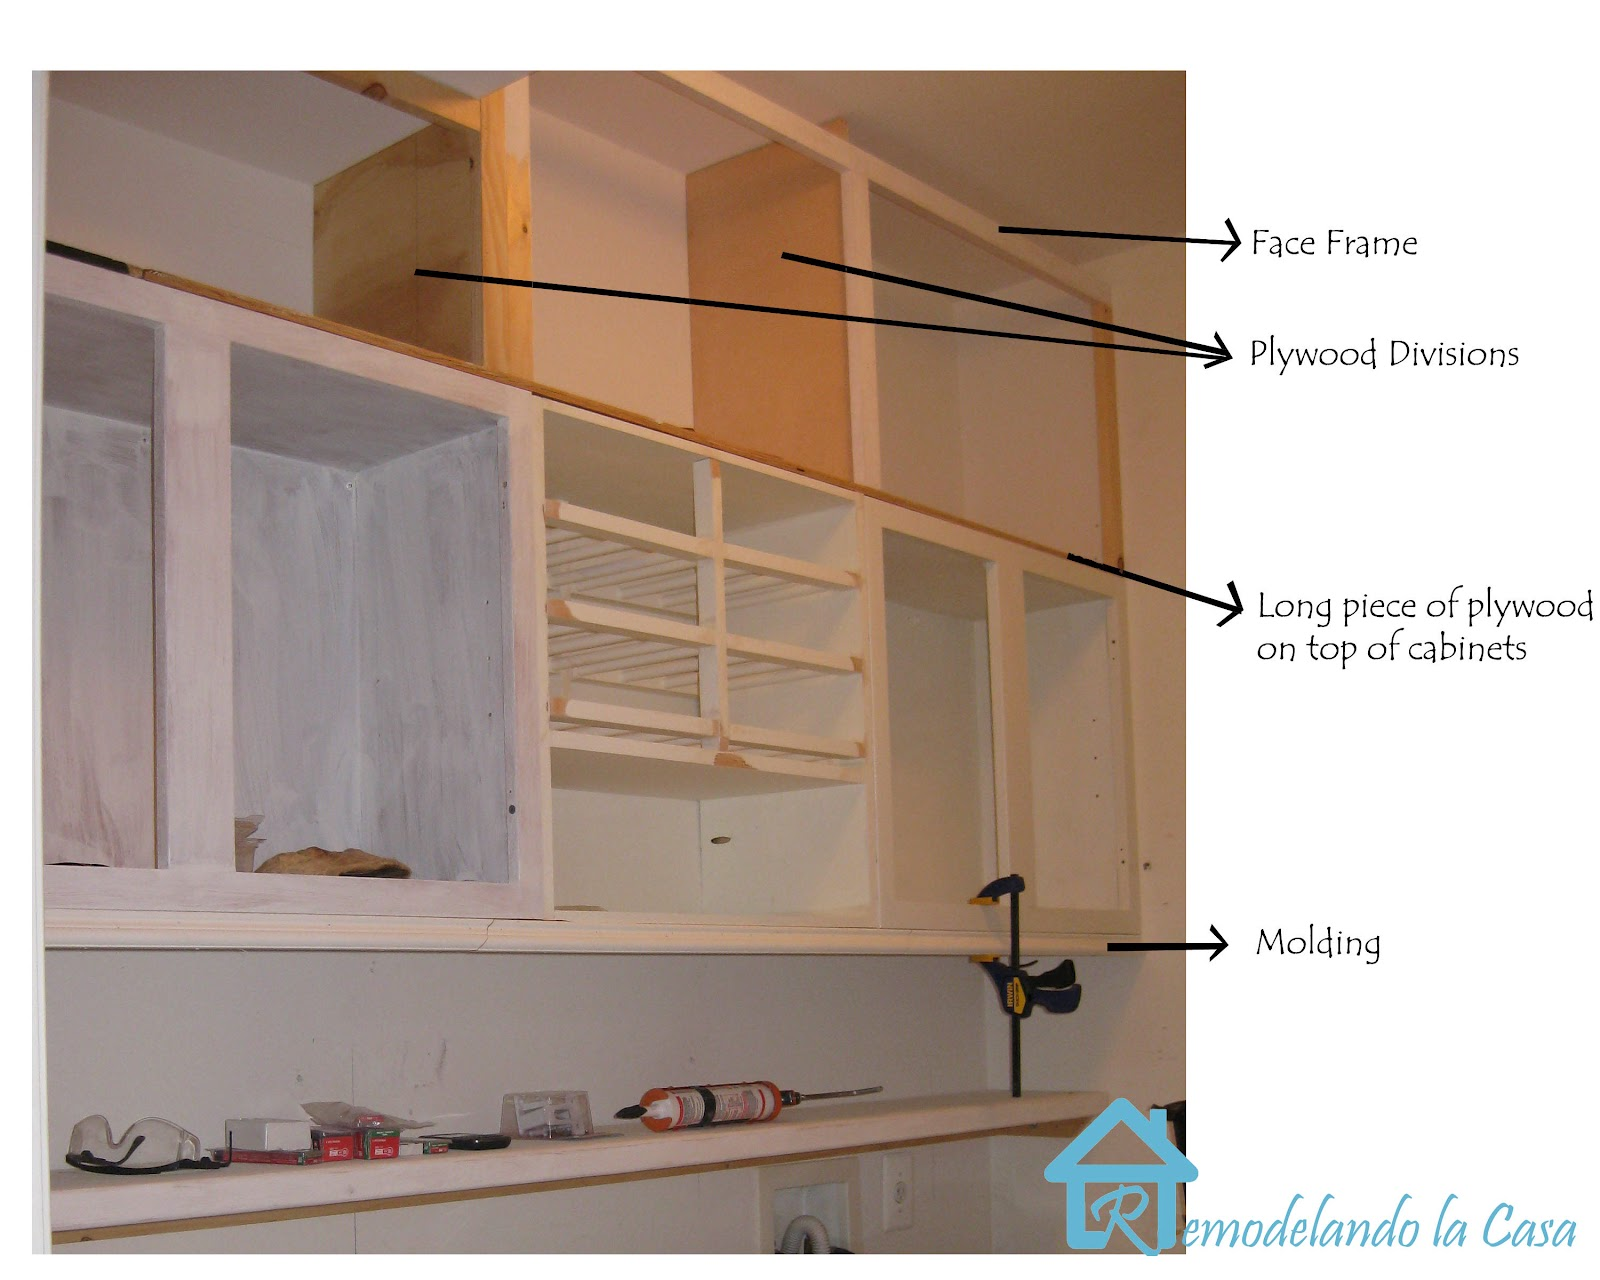 Diy Extend Kitchen Cabinets Building The Cabinets Up To The Ceiling Remodelando La Casa